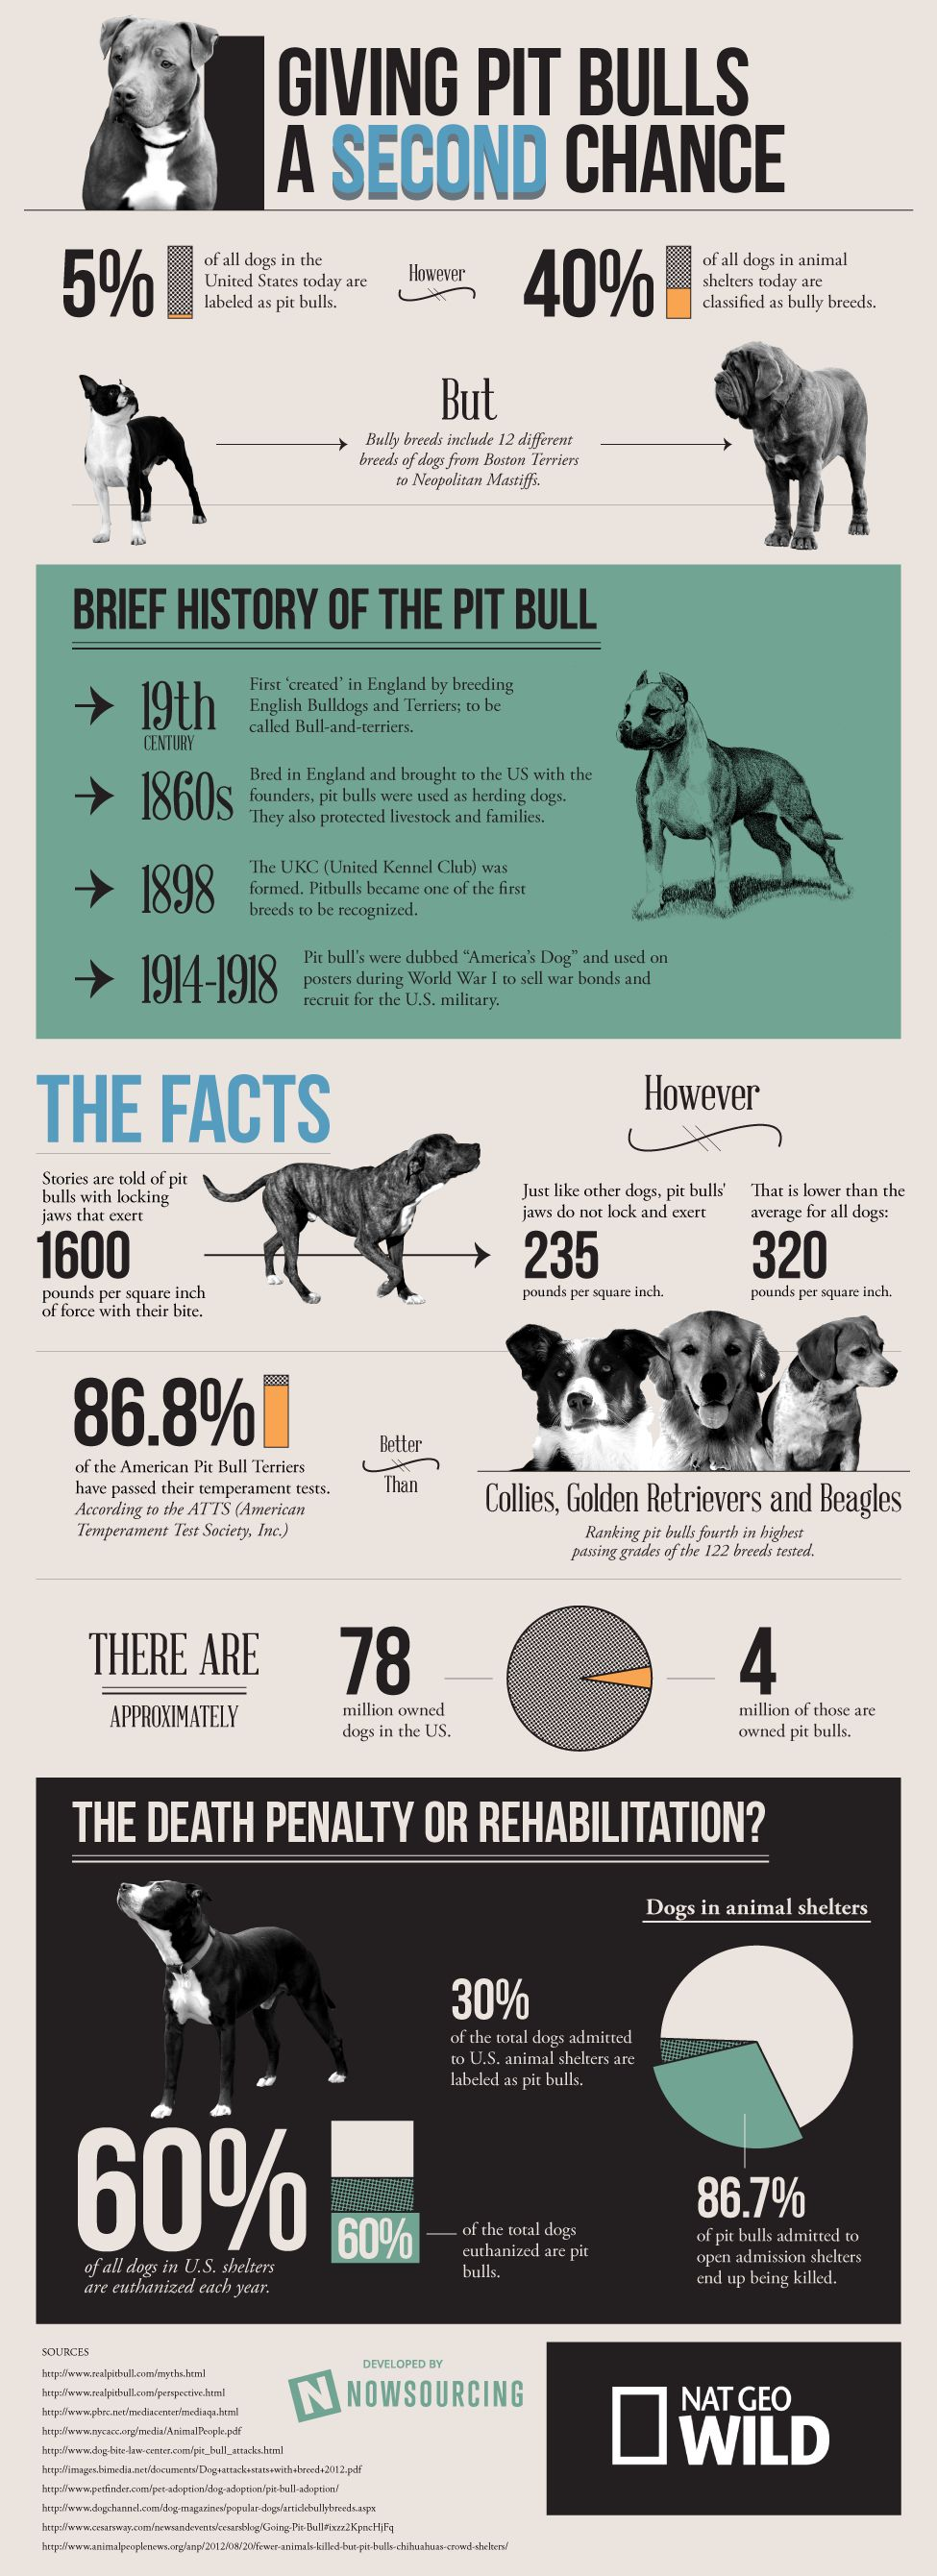 Pitbull Awareness People Need To Seriously Be Educated Before